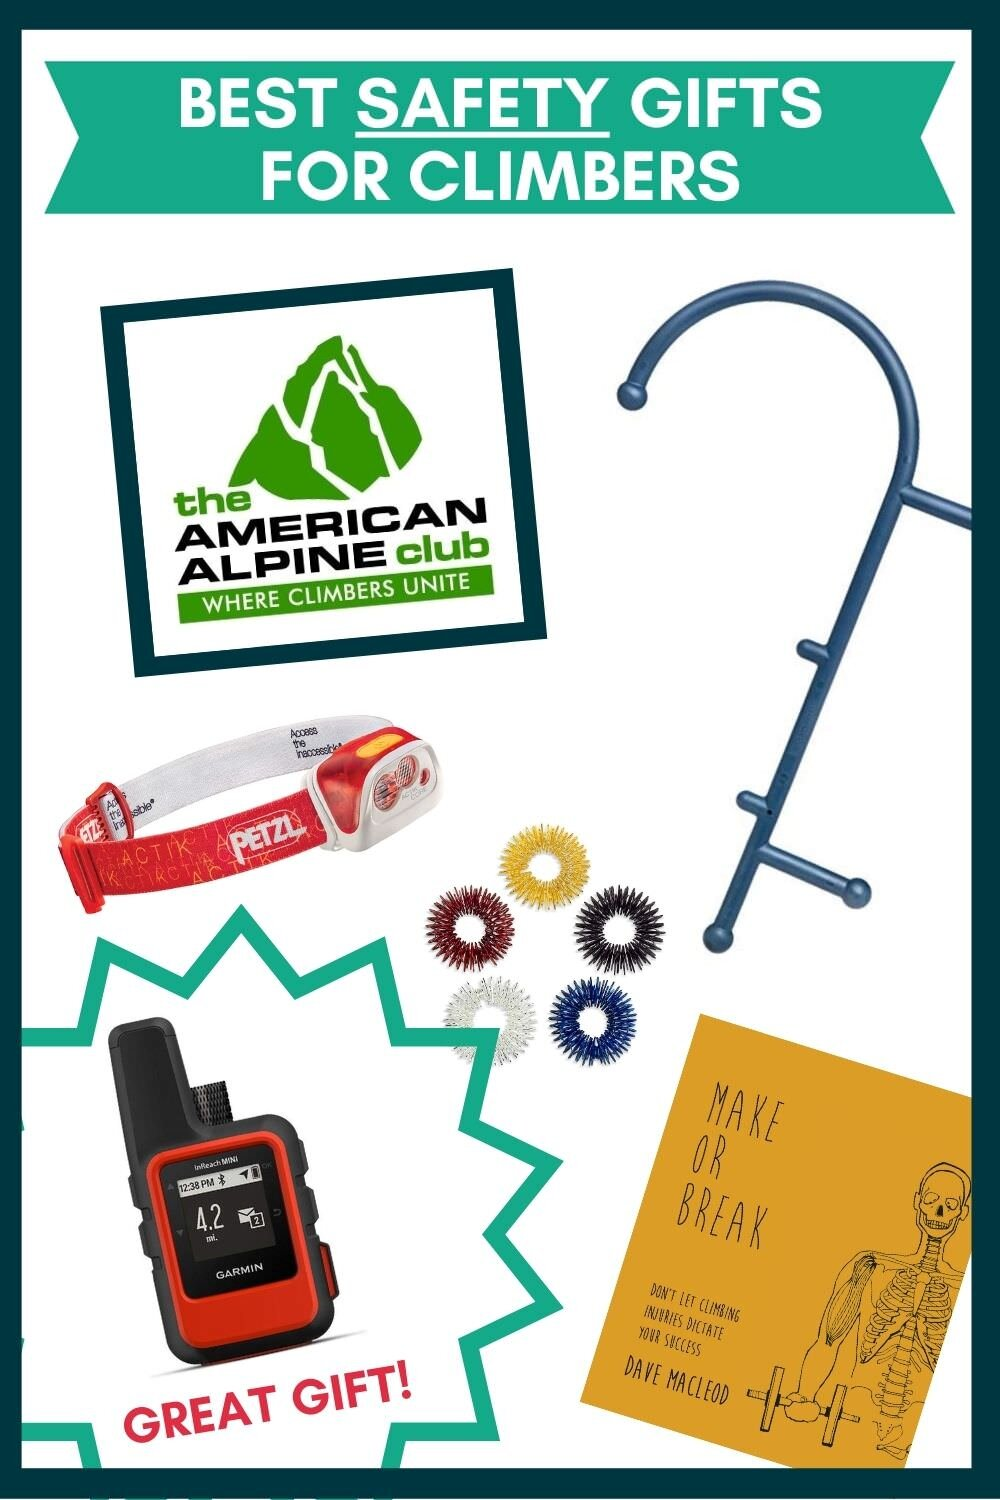 Rock Climbing gifts to keep your friends and family safe and injury free!